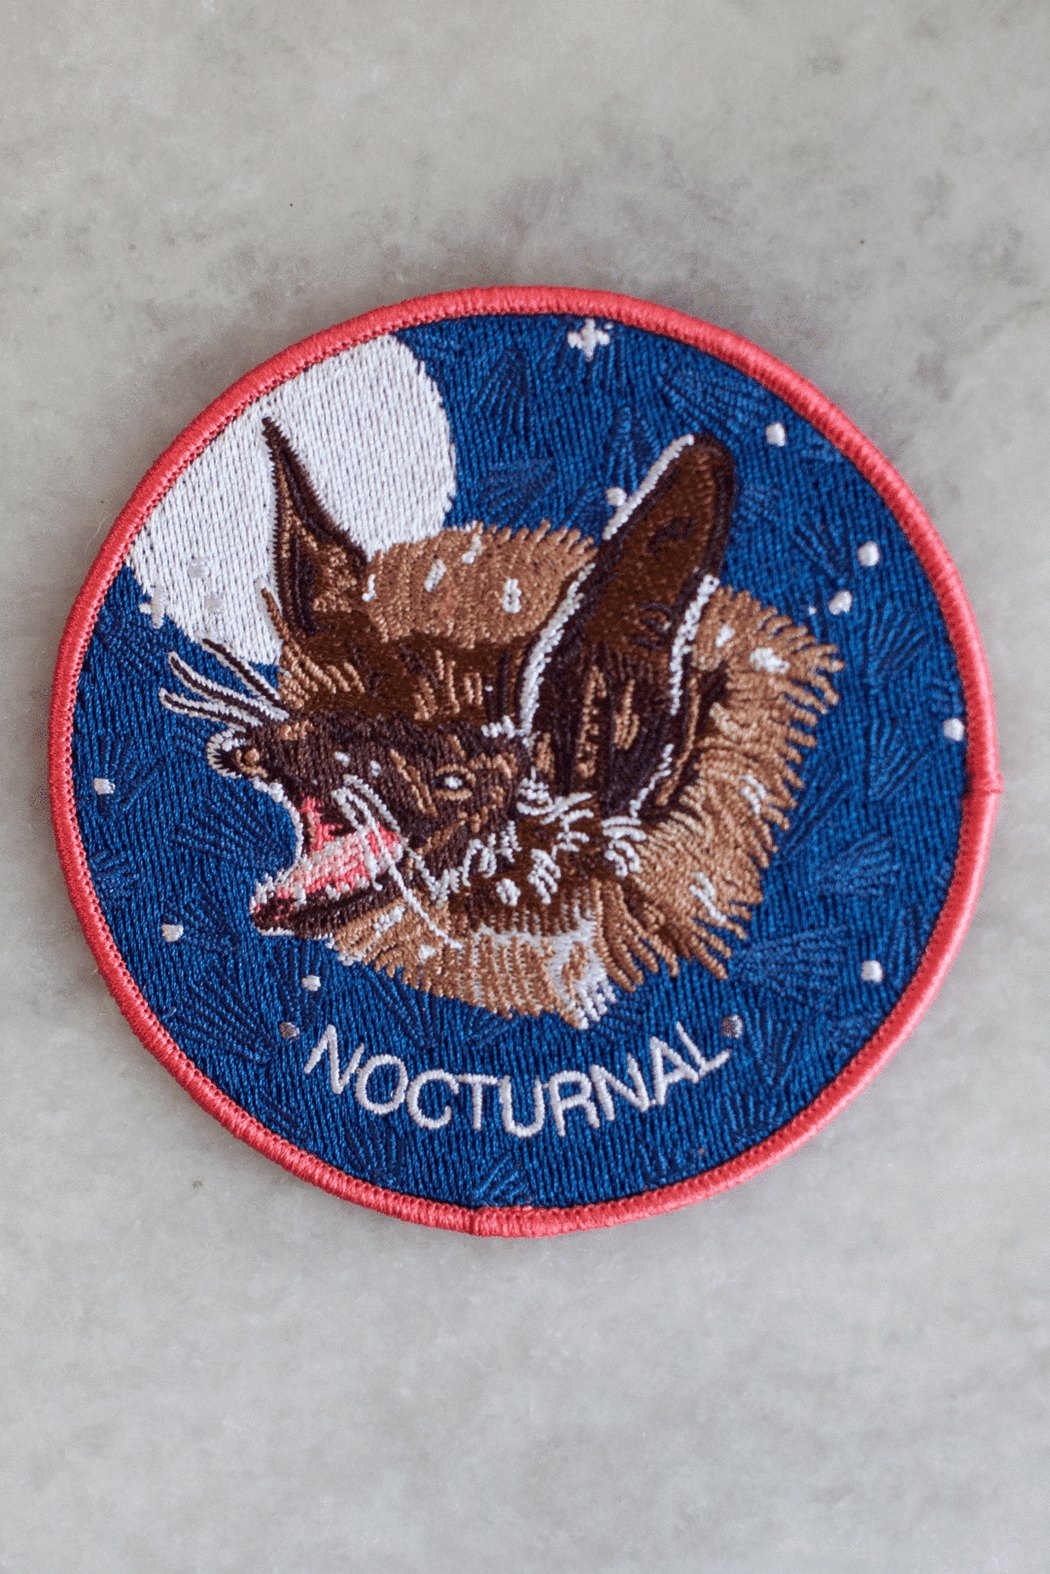 Nocturnal Iron-On Patch